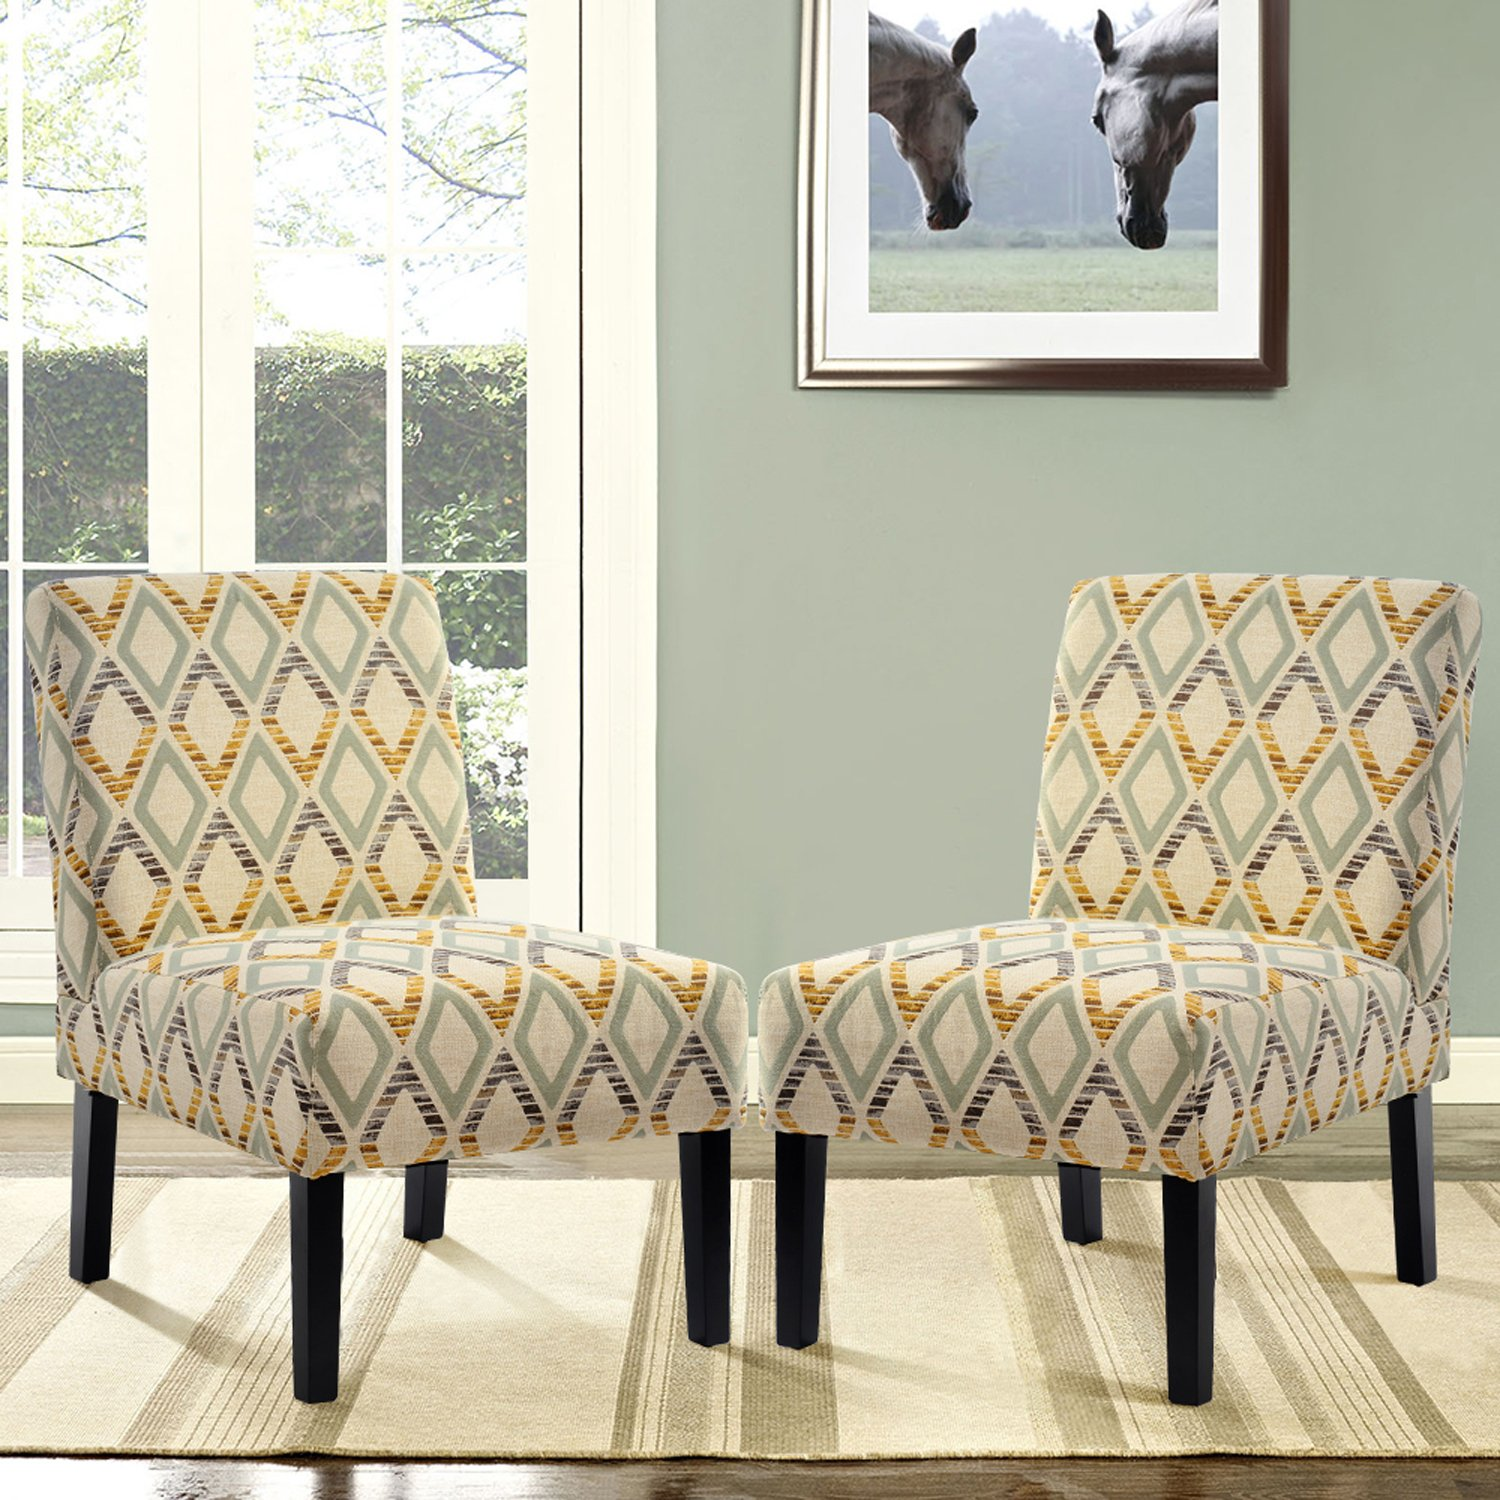 Harper&Bright Designs Upholstered Accent Chair Armless Living Room Chair Set of 2 (Beige/Diamond)